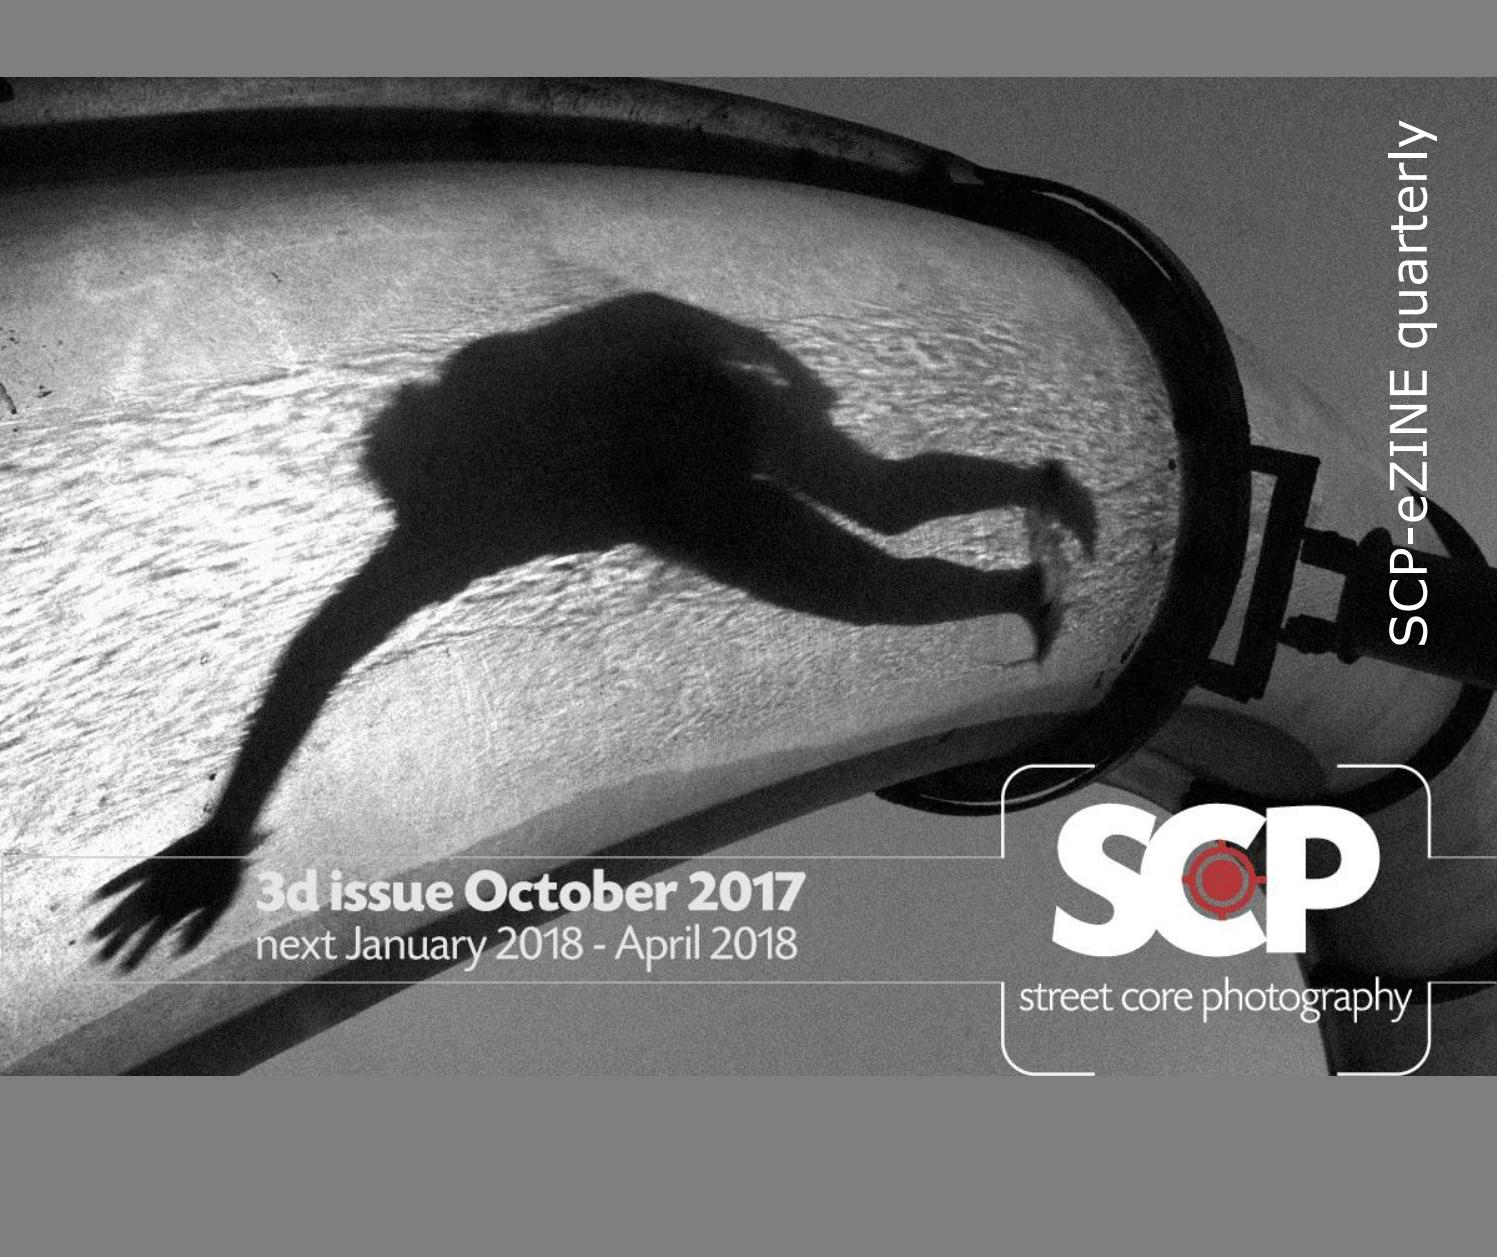 SCP eZINE - 3d issue - October 2017 by Street Core